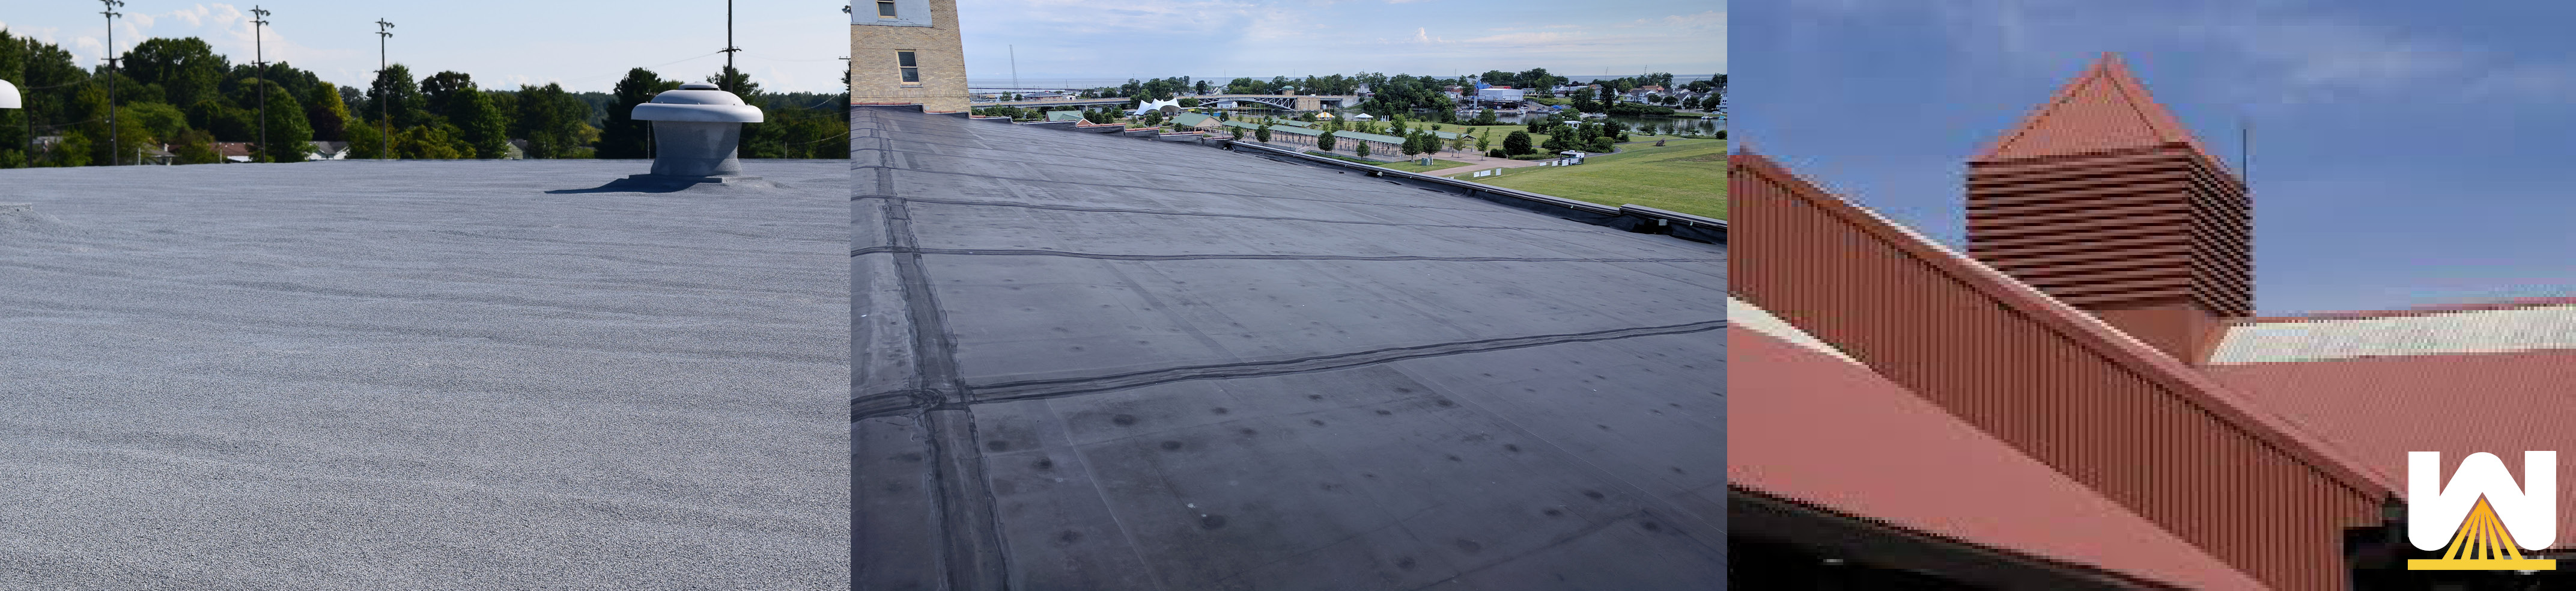 best roofing systems for flat roofs - Flat Roof Systems